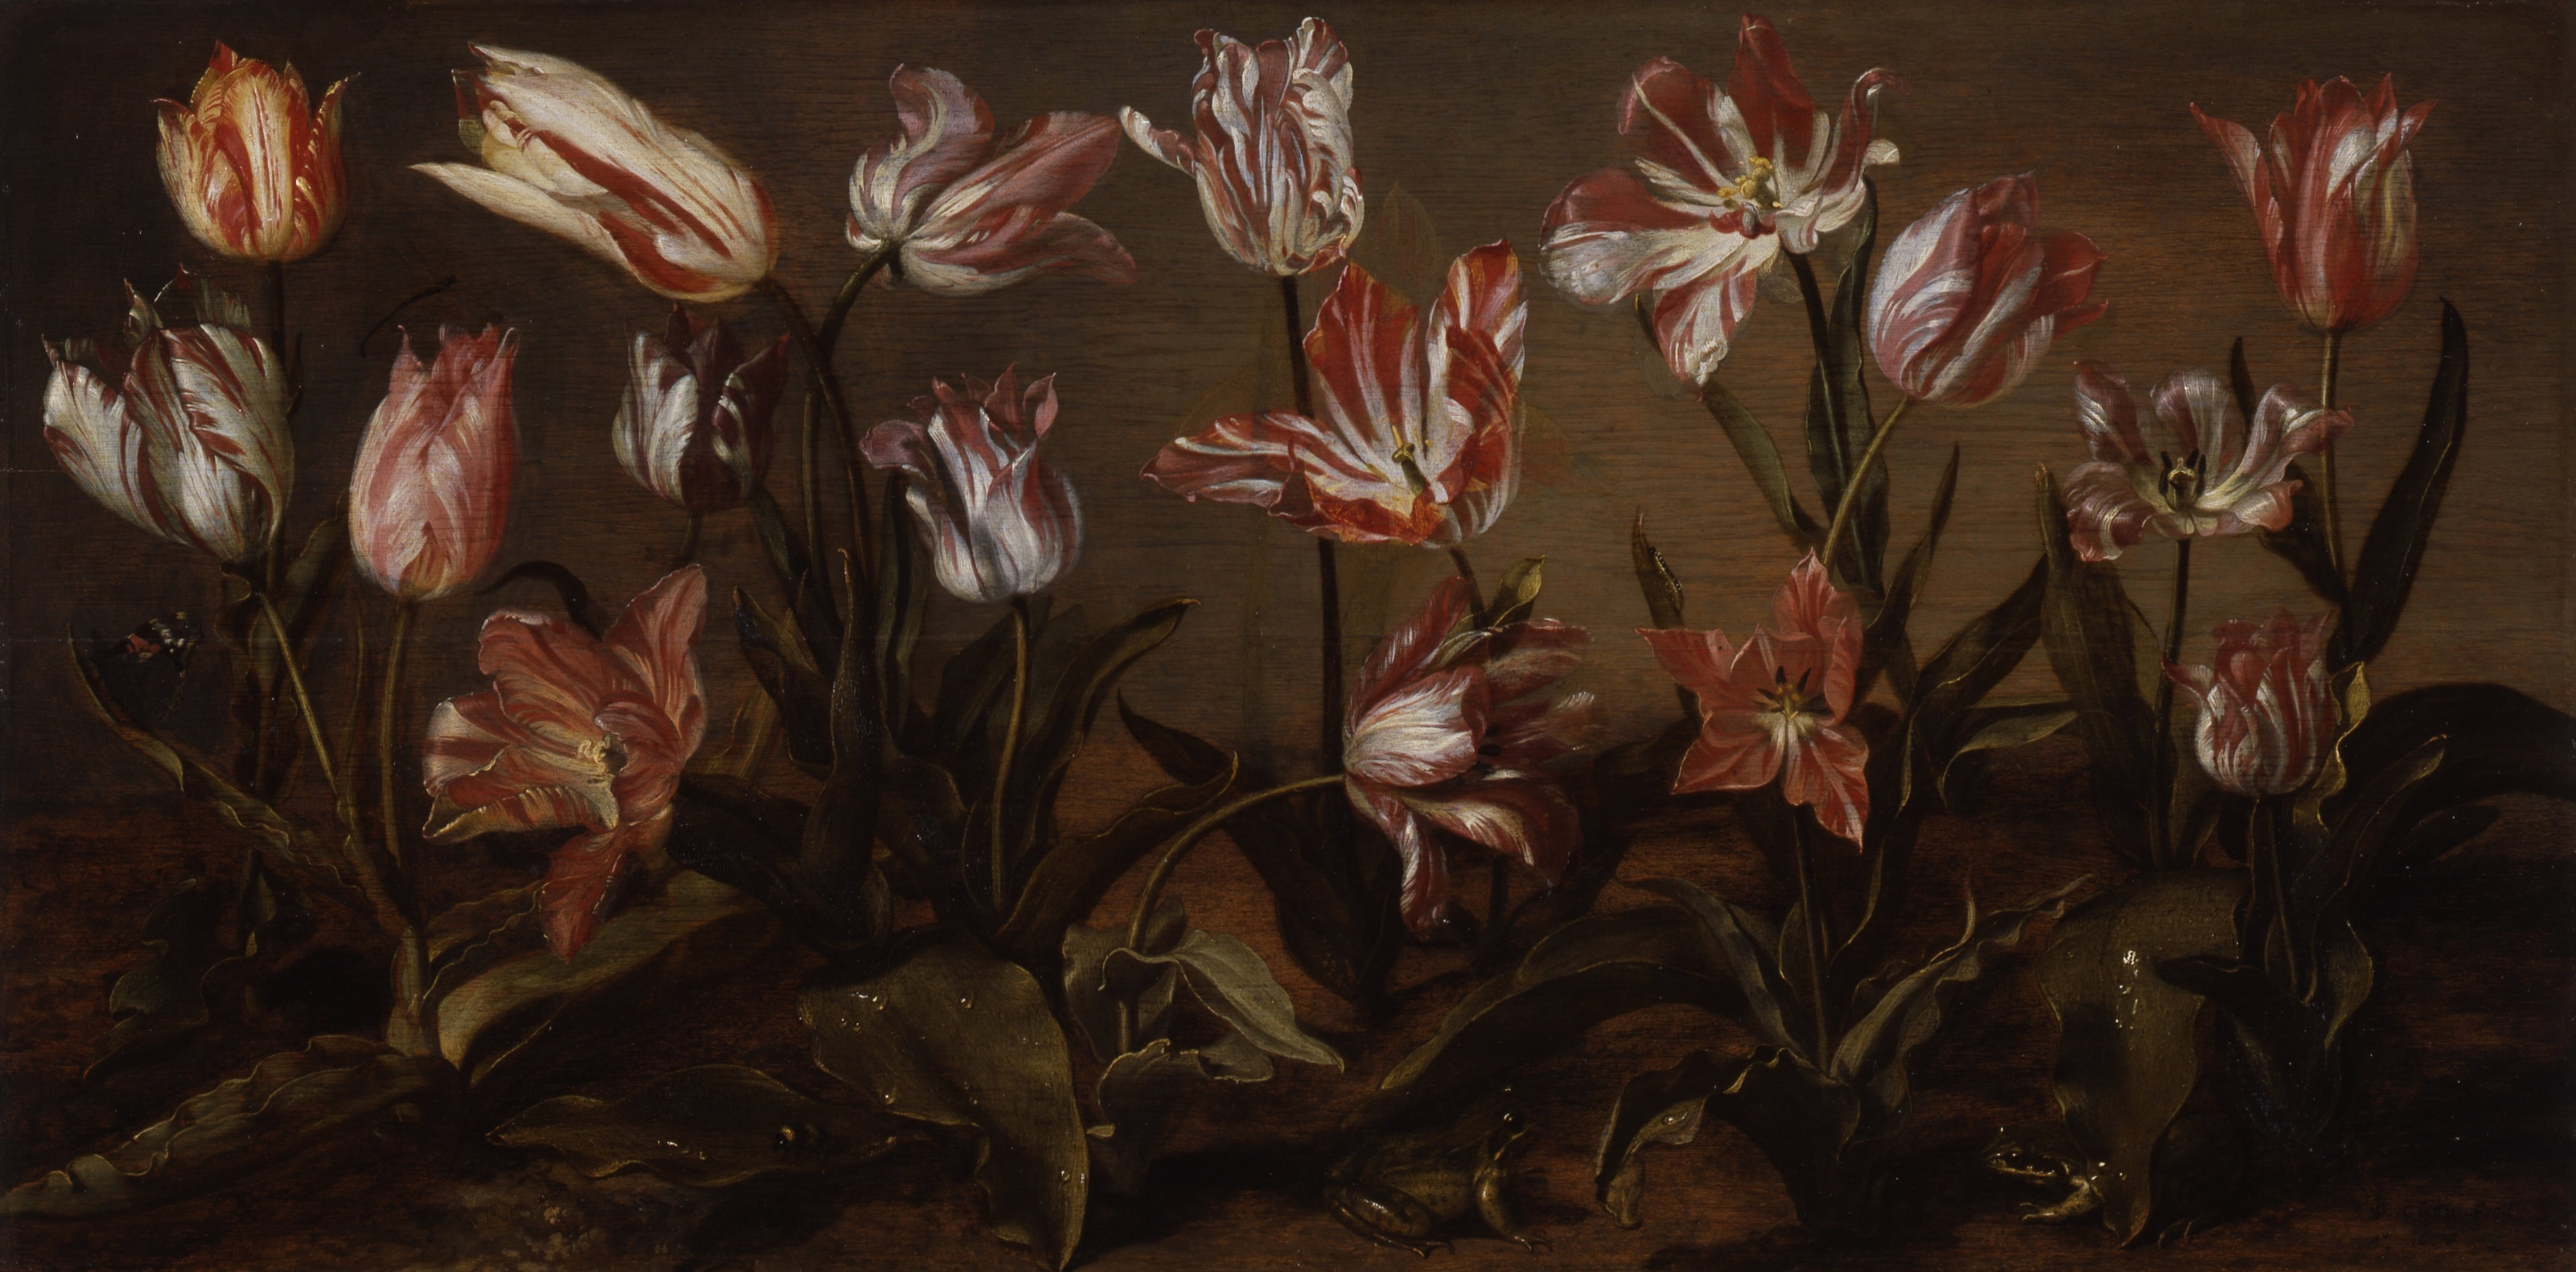 Jacob Gerritsz Cuyp, Bed of Tuilps, 1638, Collection of the Dordrecht Museum